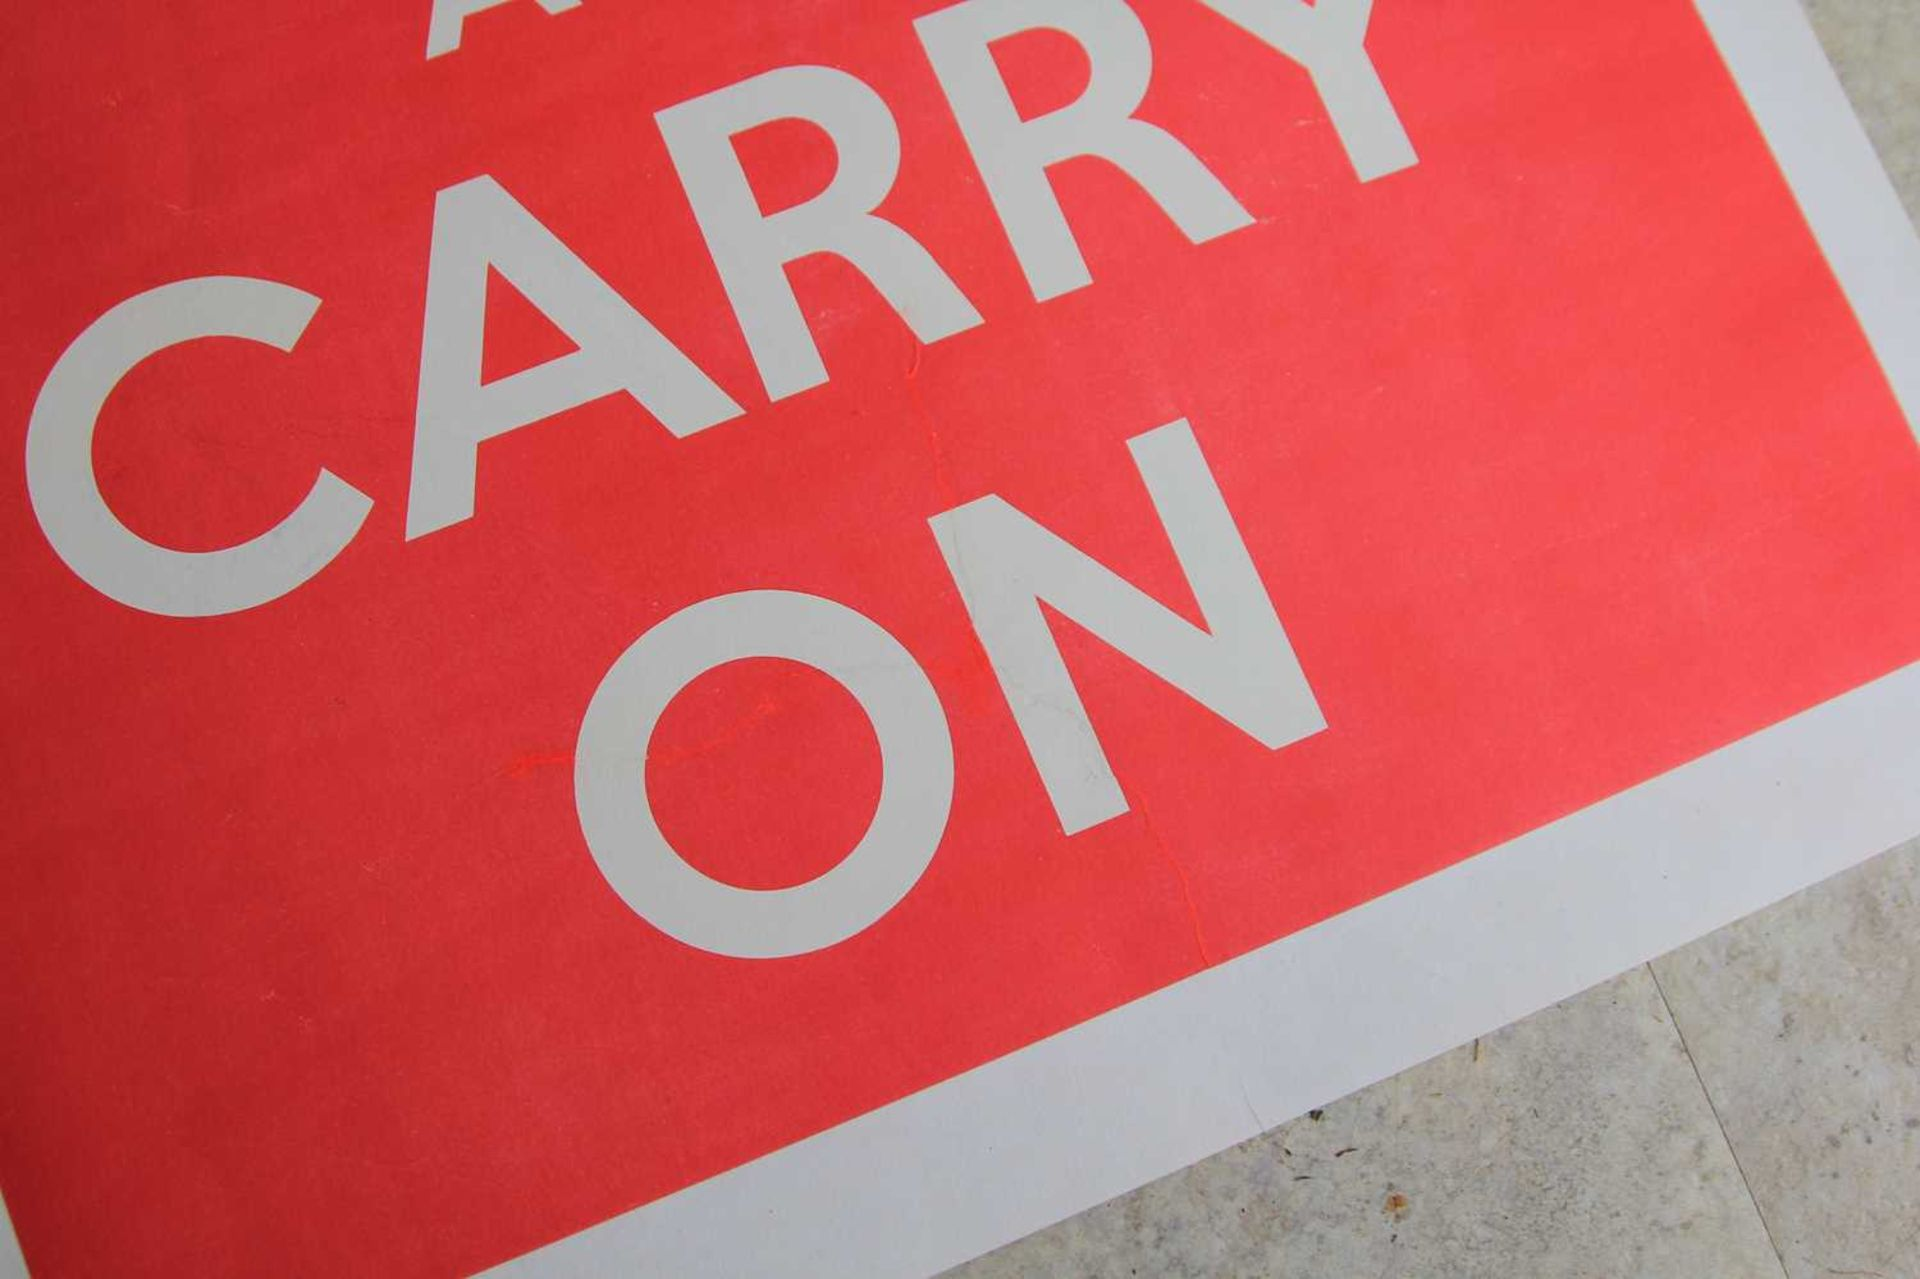 'KEEP CALM AND CARRY ON' - Image 4 of 5